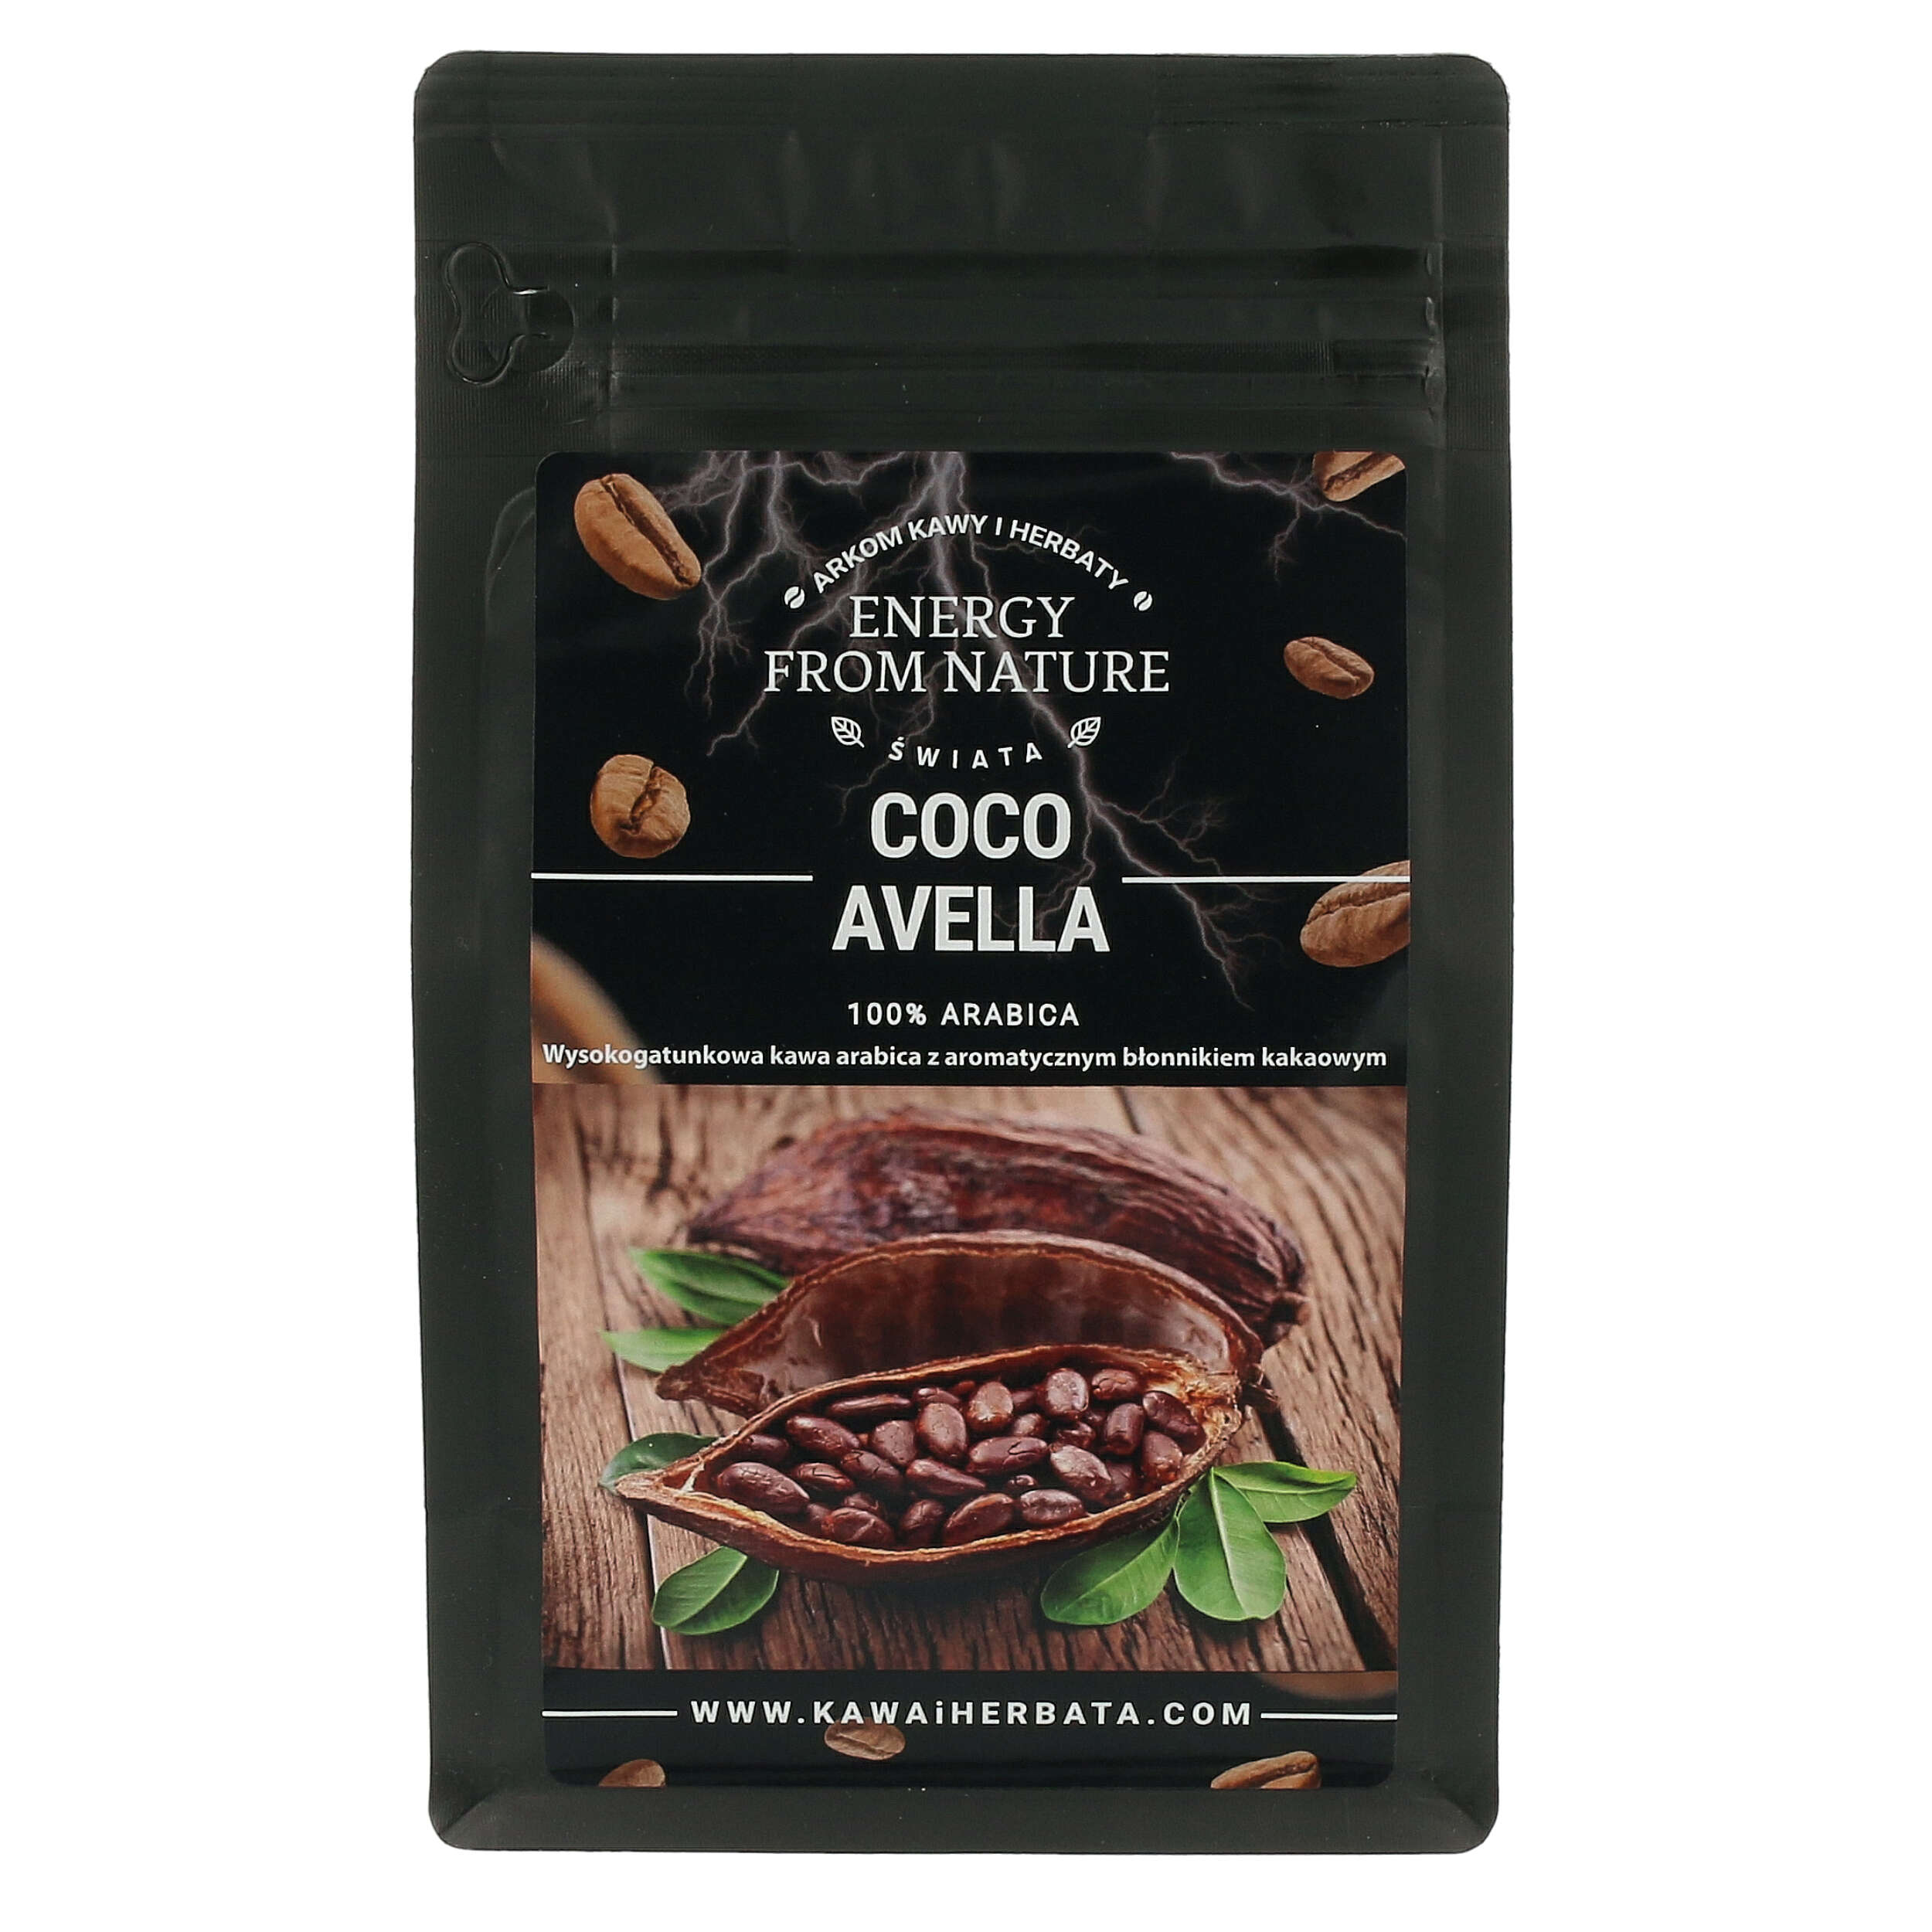 Coco Avella - Energy From Nature - 200g + próbka gratis